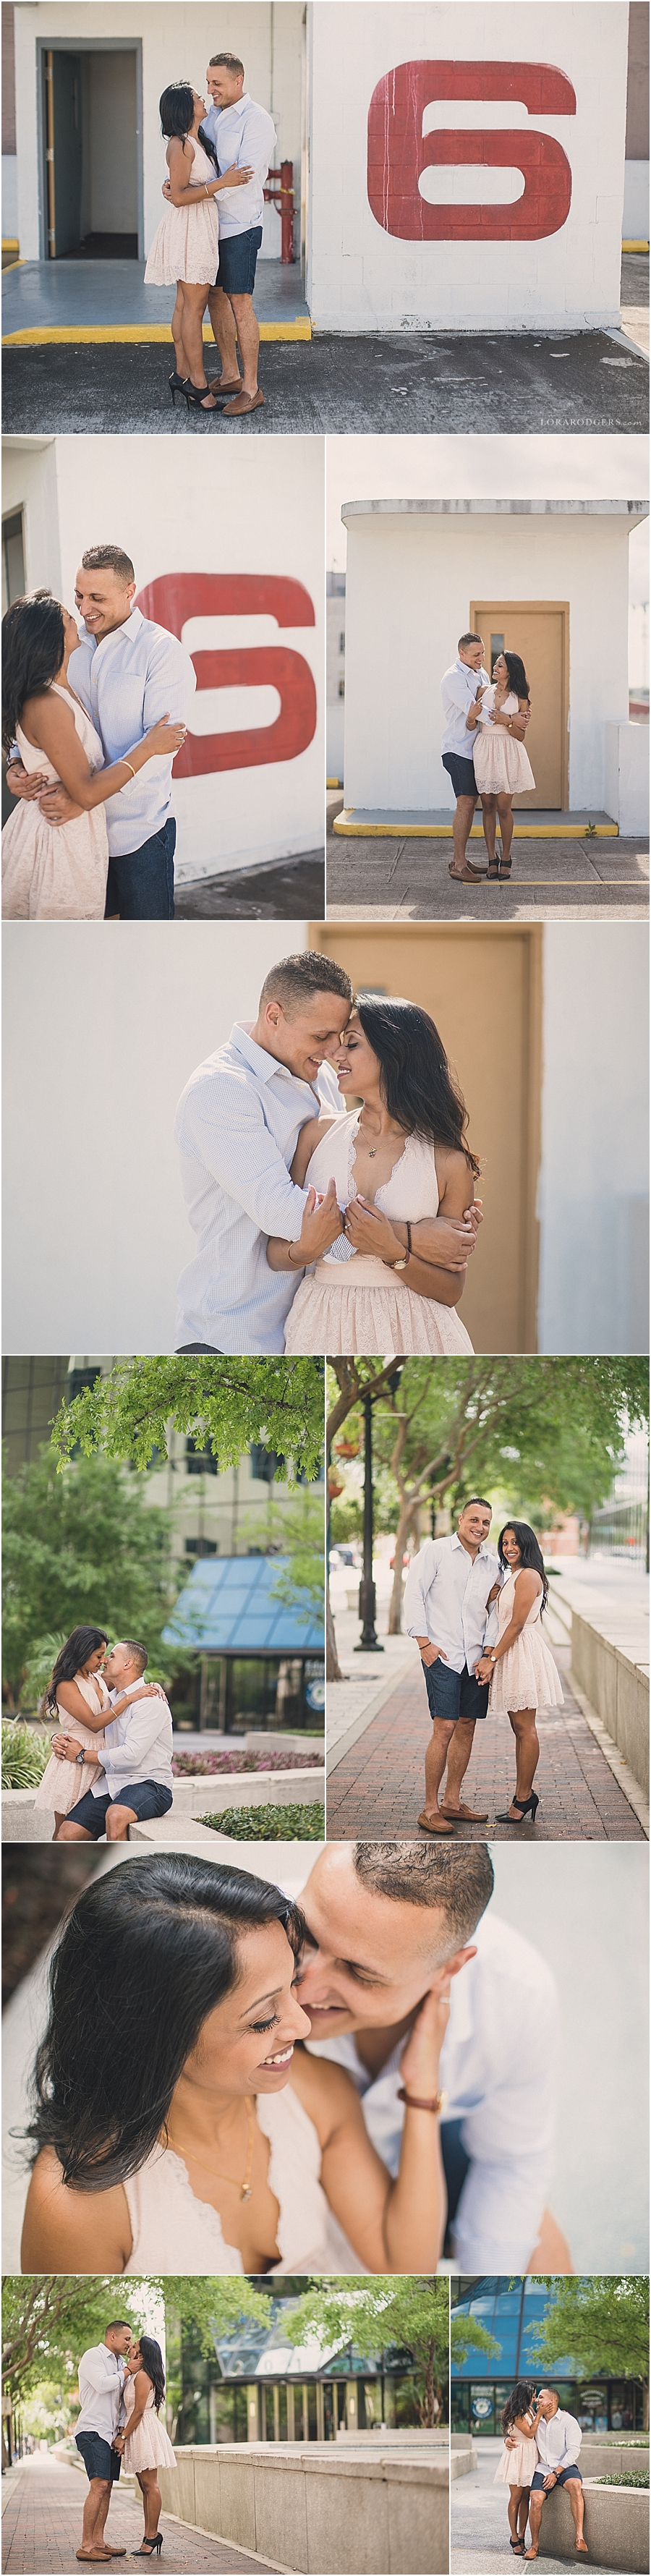 Downtown_Orlando_Florida_Engagement_004